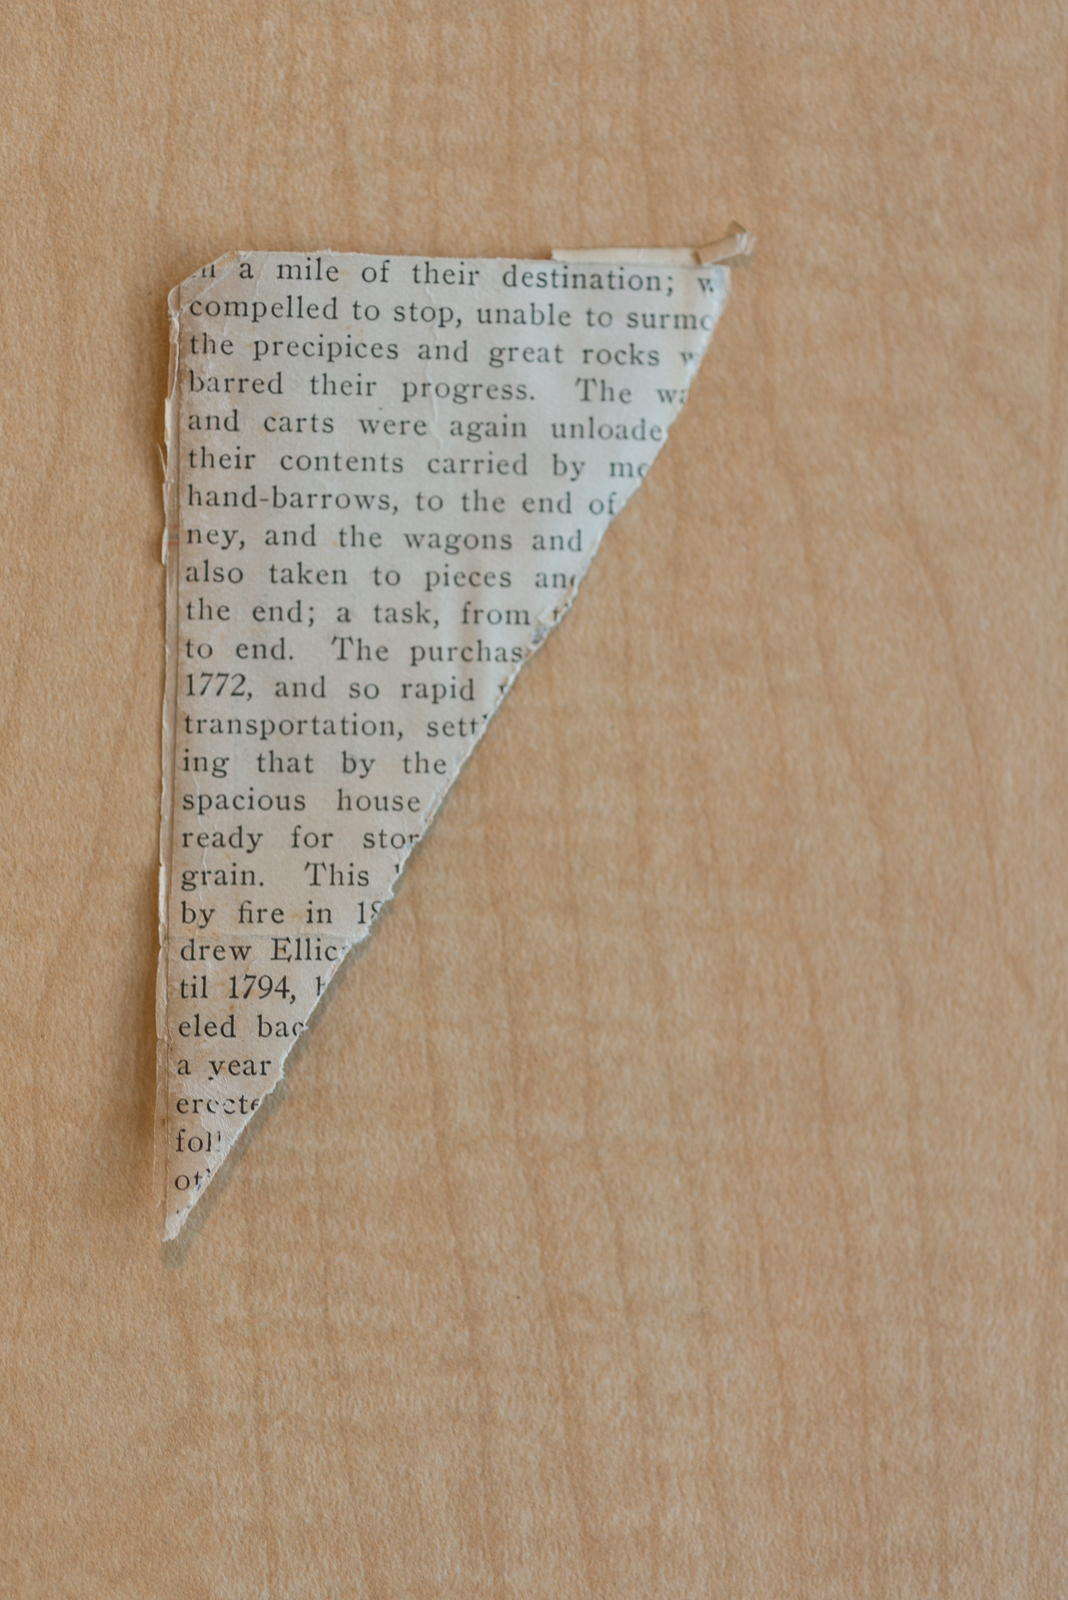 Newspaper Fragment from the Collection of the Howard County Historical Society, Date Unknown, Ellicott City, Maryland 2017